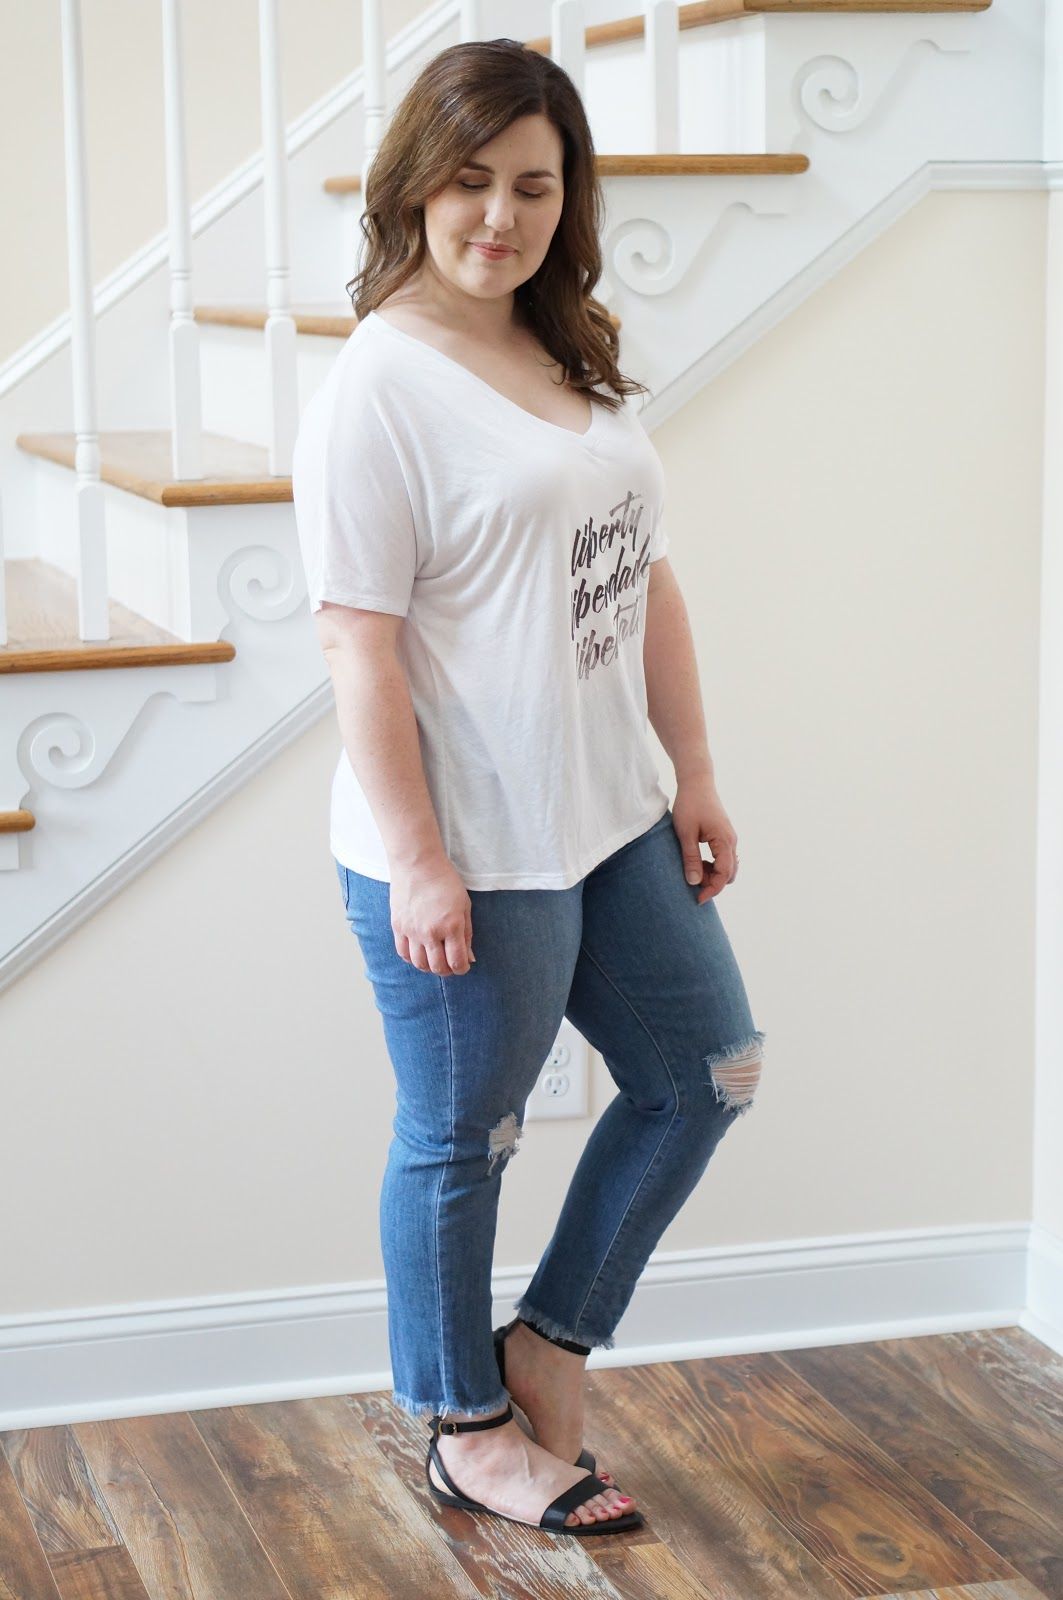 Popular North Carolina style blogger Rebecca Lately shares her collection of Sevenly tees. Click here to read and support Anti-Human Trafficking month!